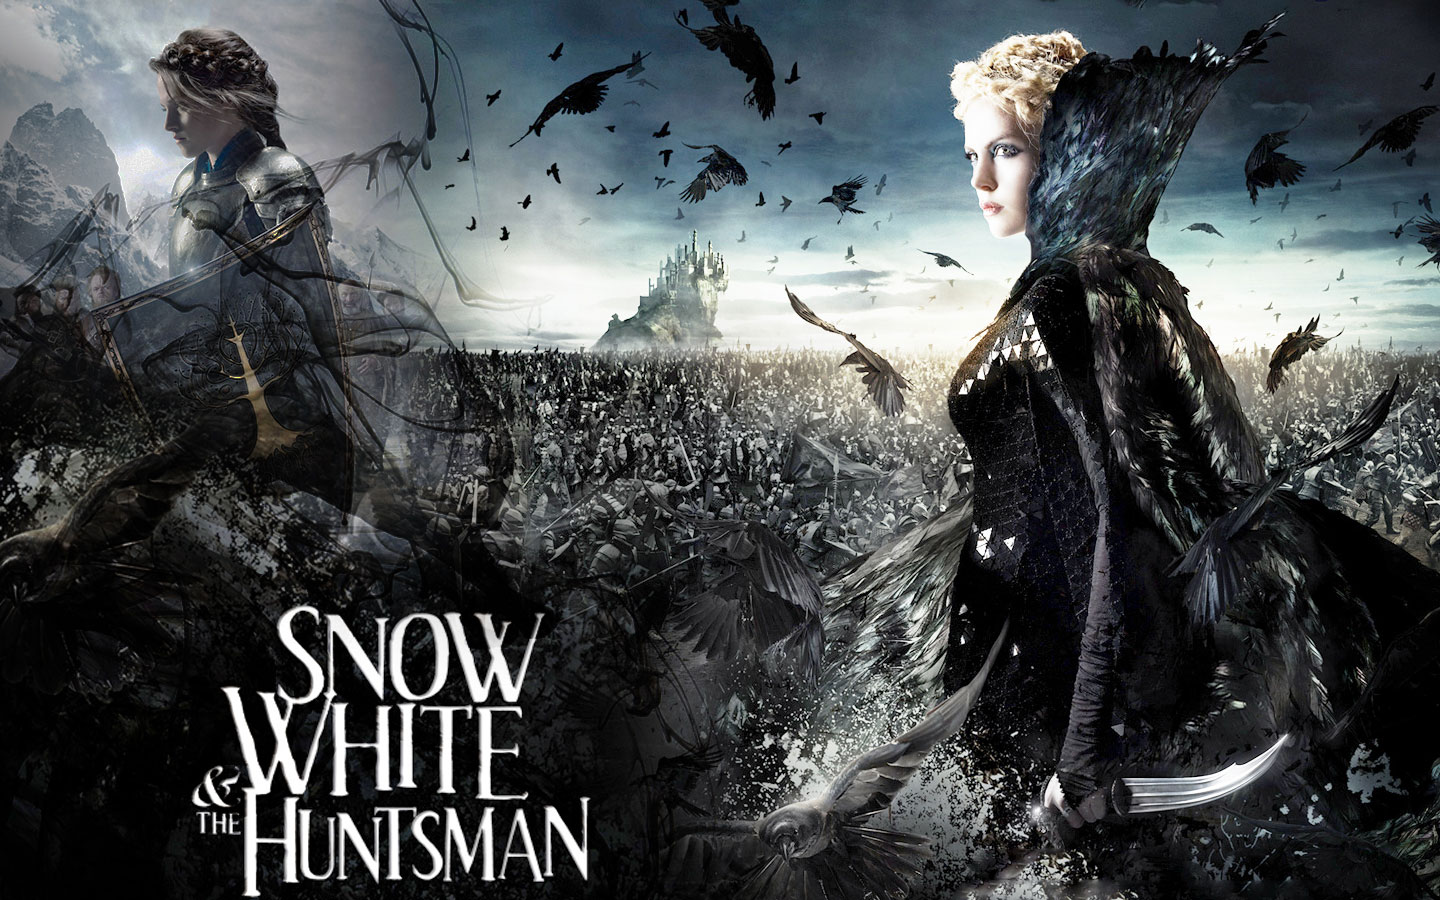 snow white and the huntsman wallpaper 15135 1440x900 px